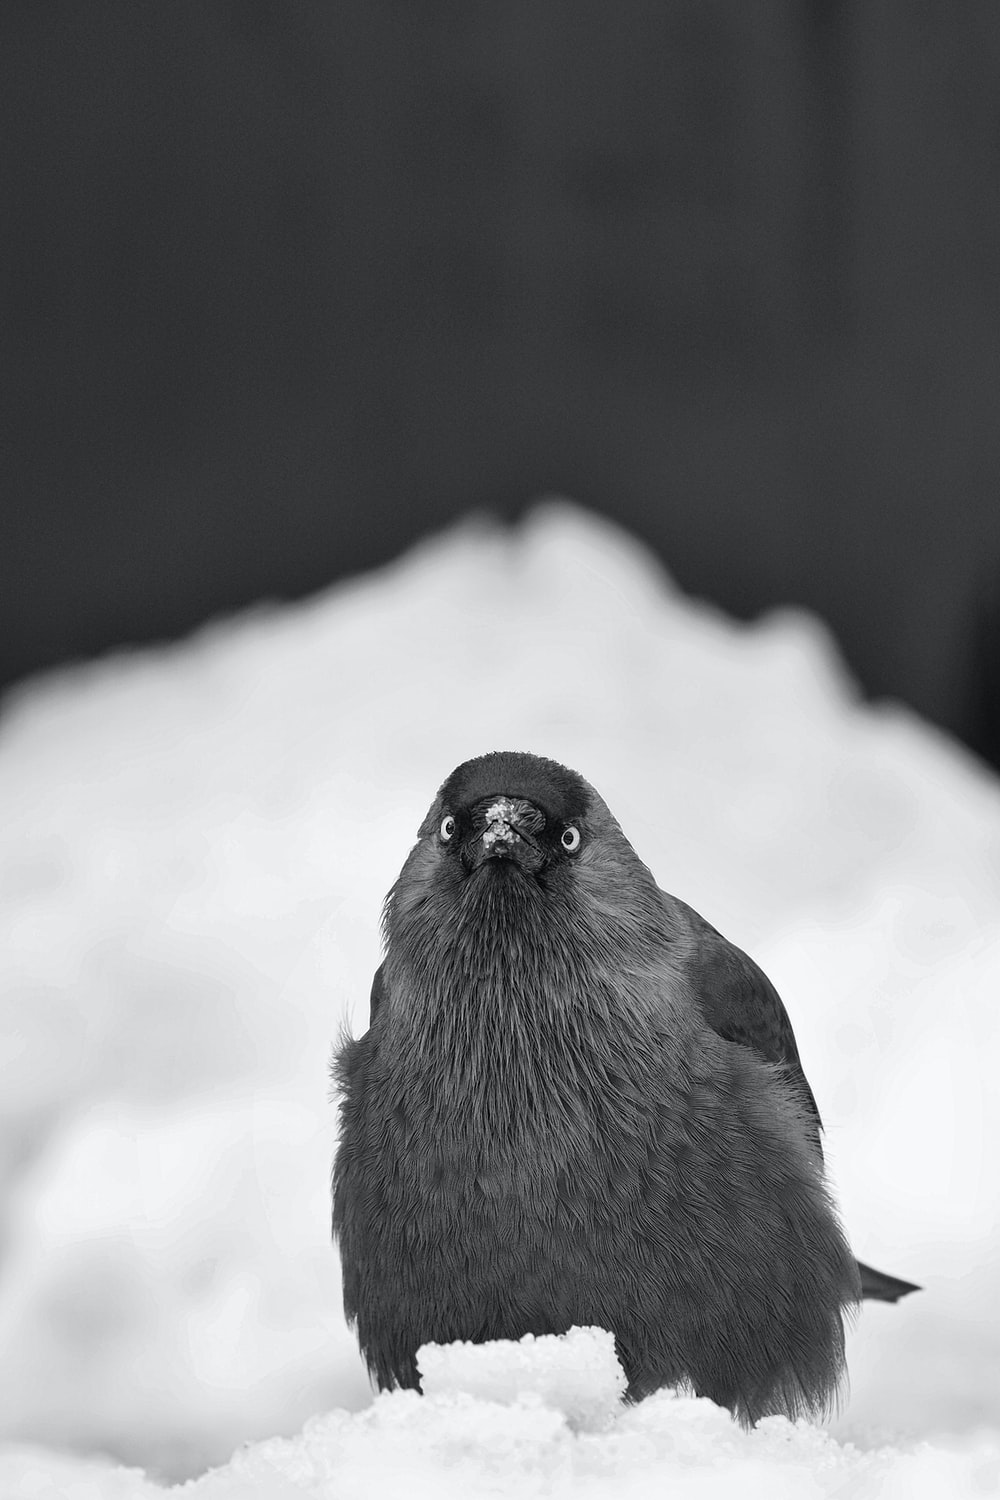 black and gray bird on snow covered ground